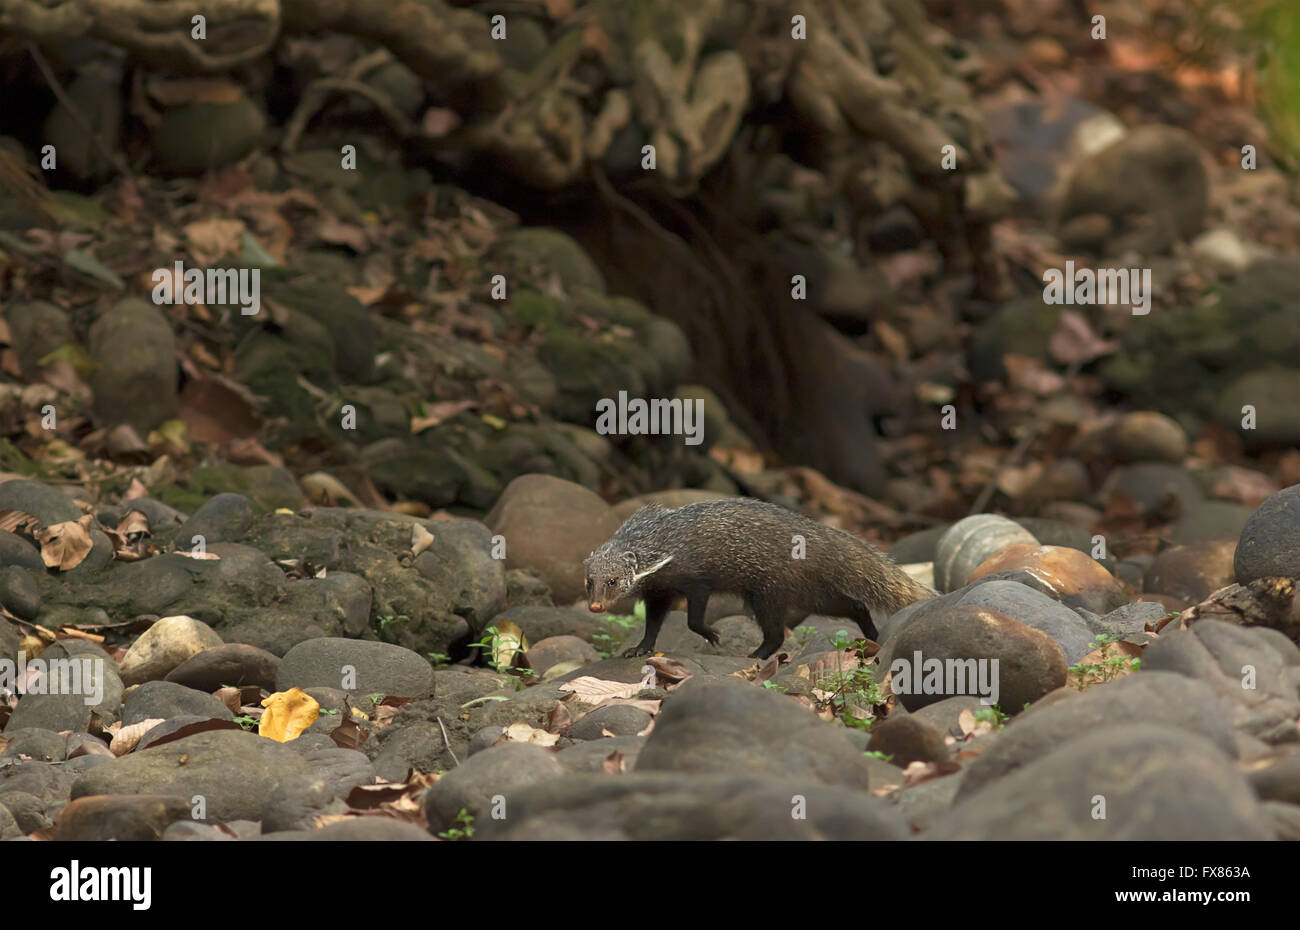 Crab eating mongoose in a forest stream of West Bengal, India - Stock Image